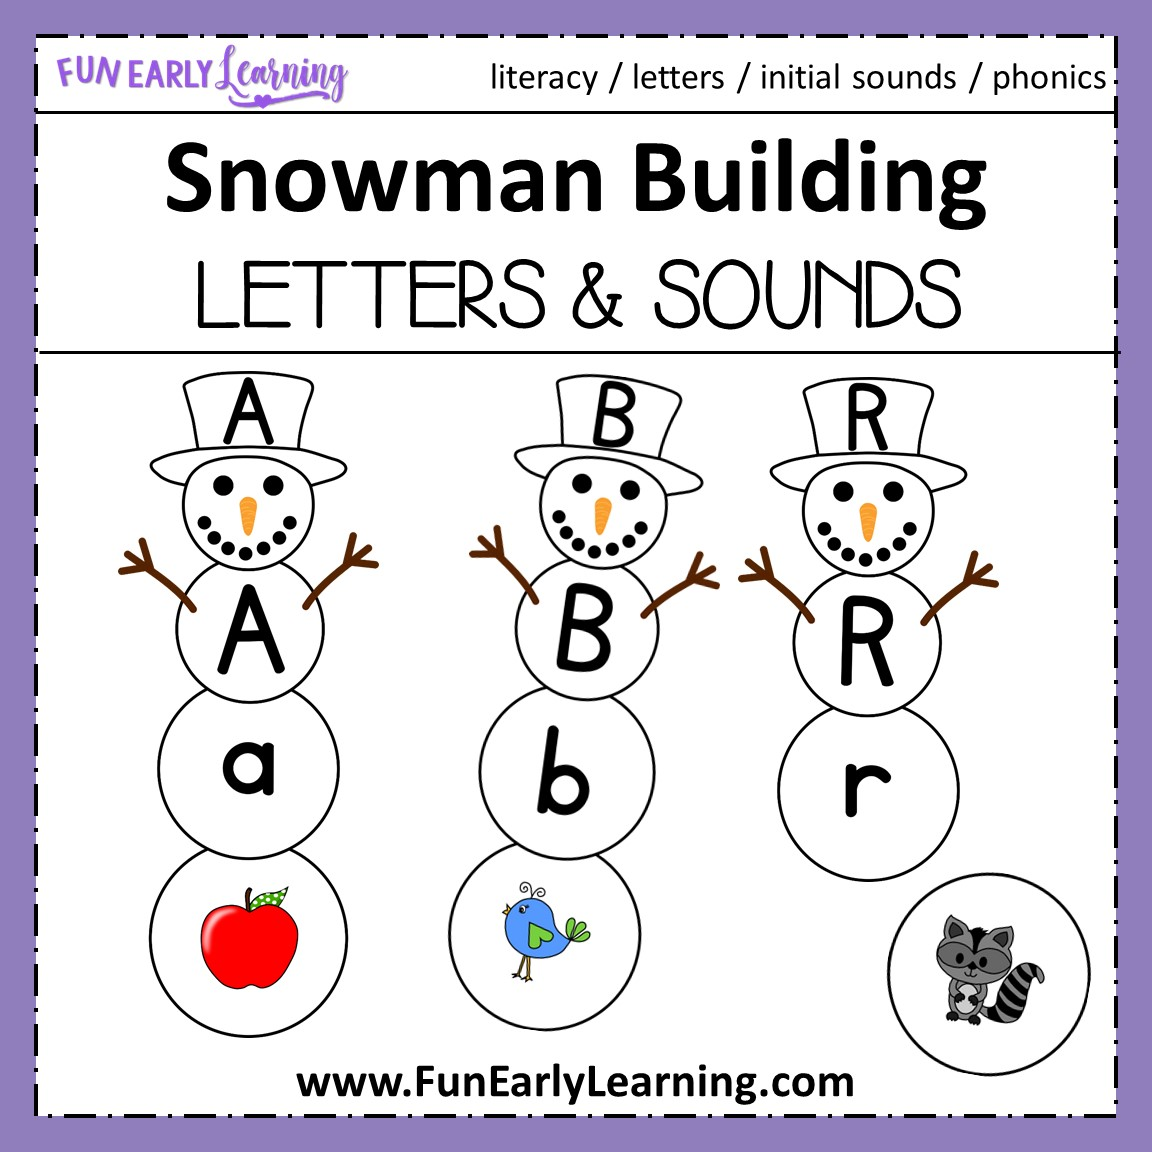 Winter Snowman Building For Letter Sound Correspondence